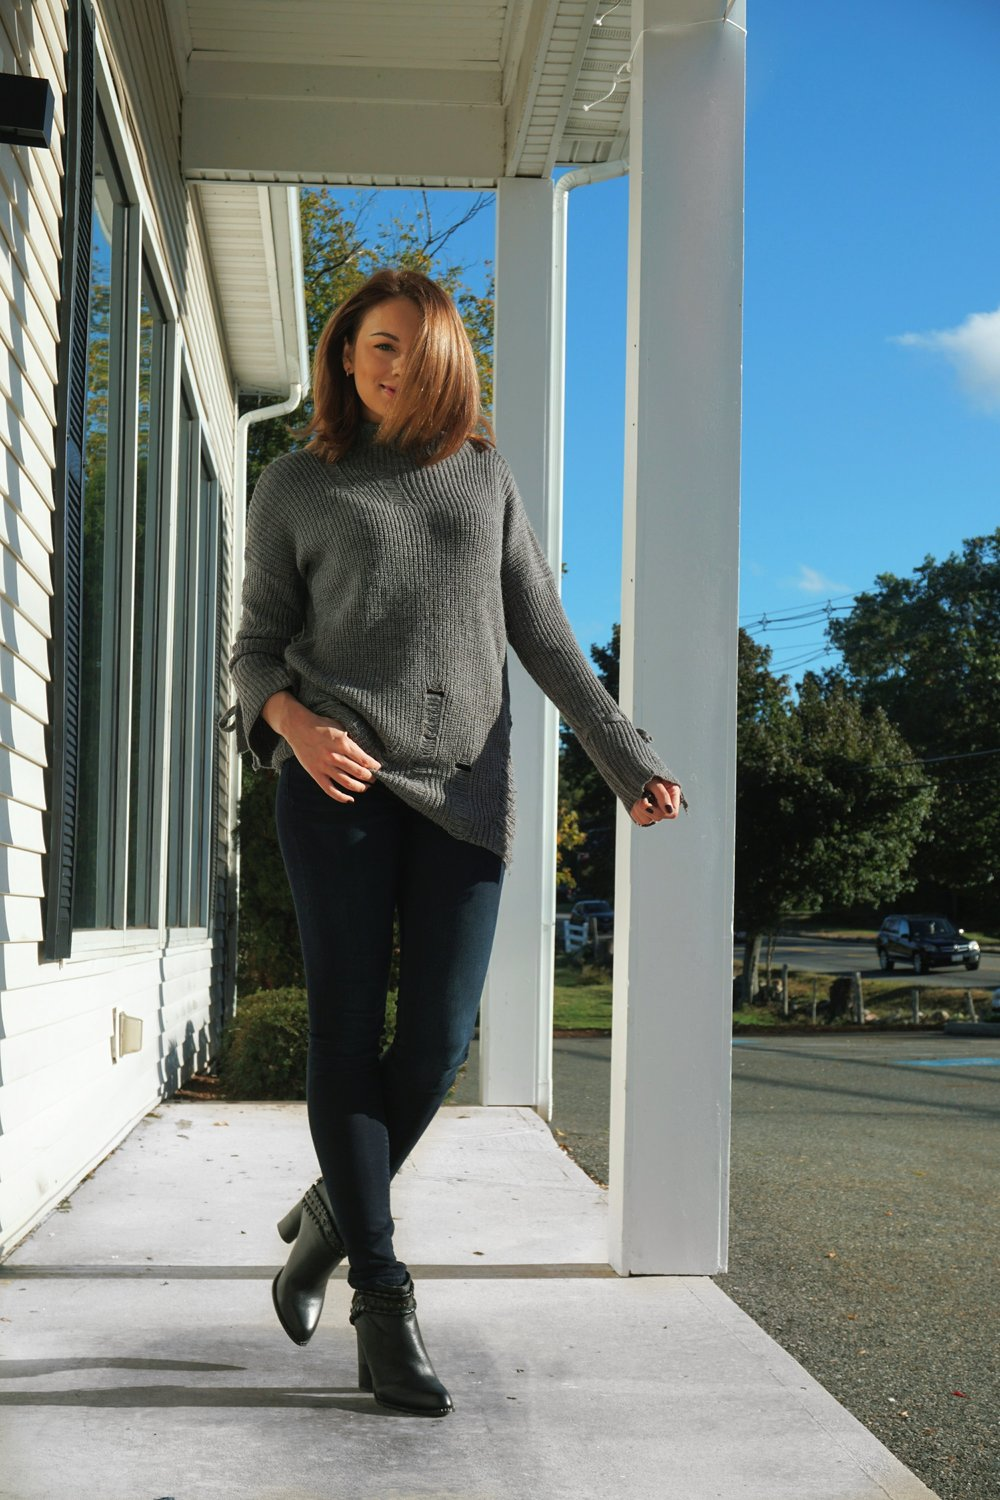 A fasion blogger wearing a gray distressed sweater, dark jeans, and high heel boots.